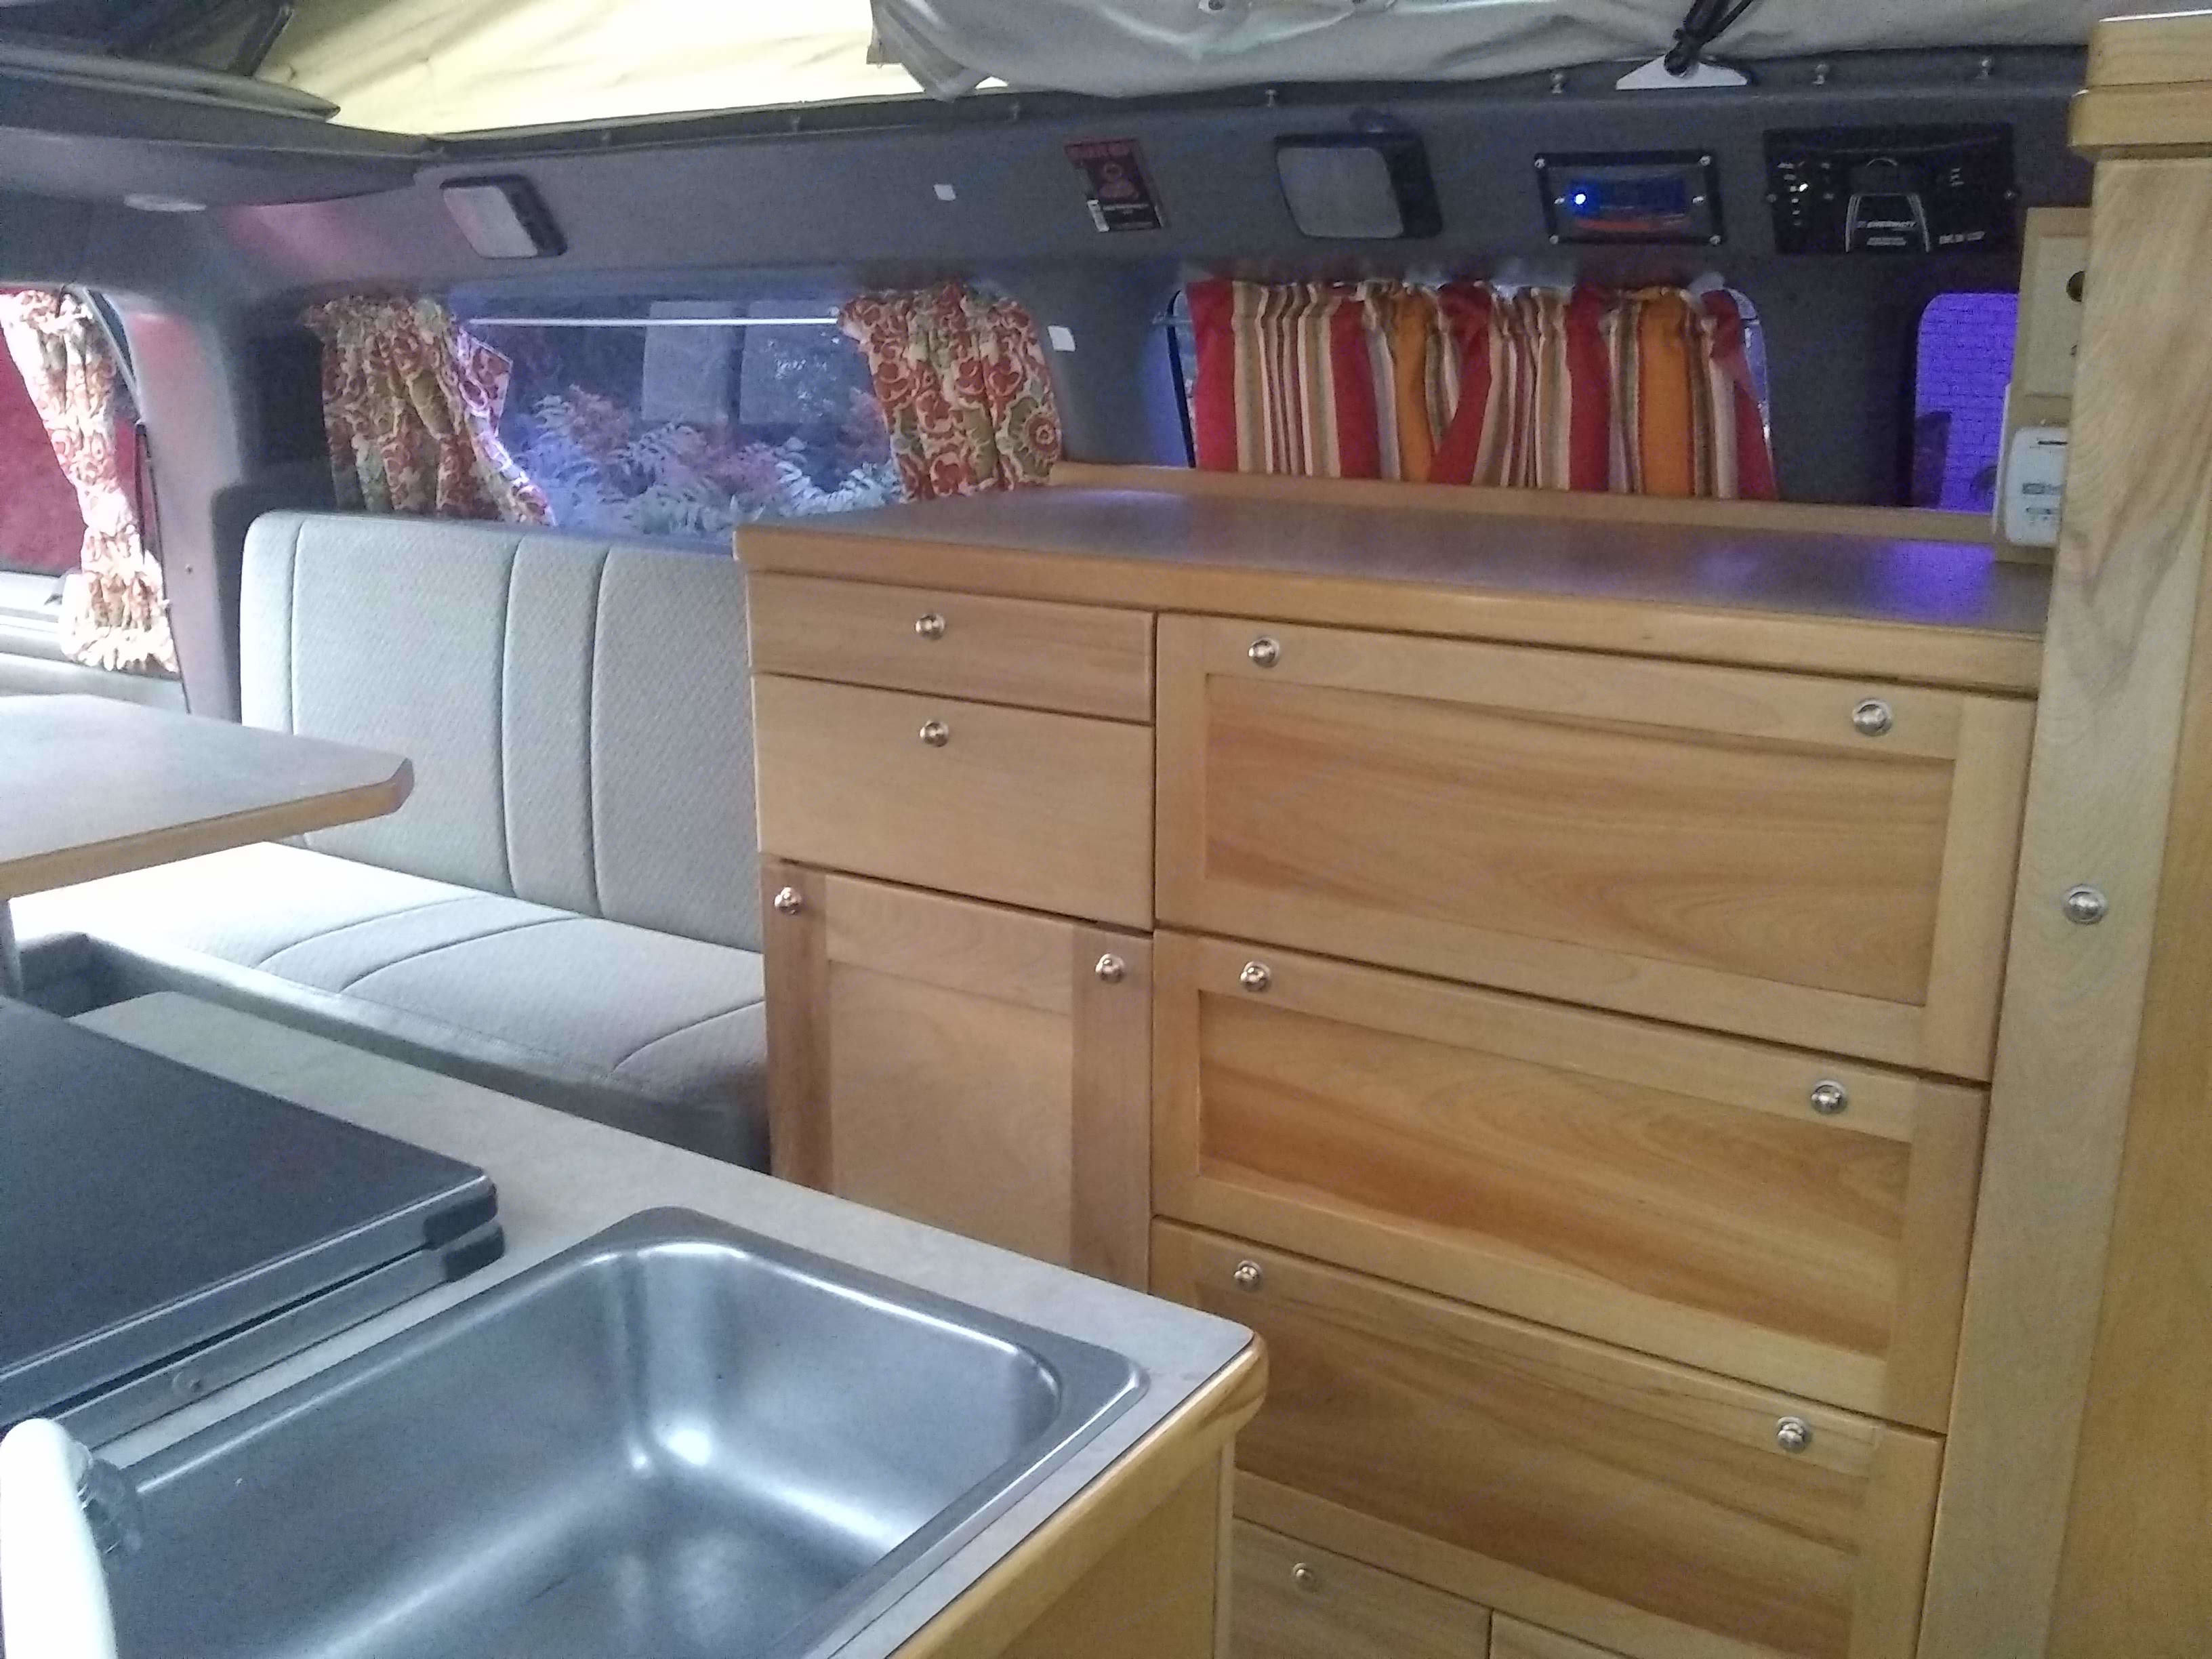 The fridge (12 and 110 V), 2 burners cook top (propane) and sink (hot and cold) are on the passenger side. . Chevrolet New-west 2000